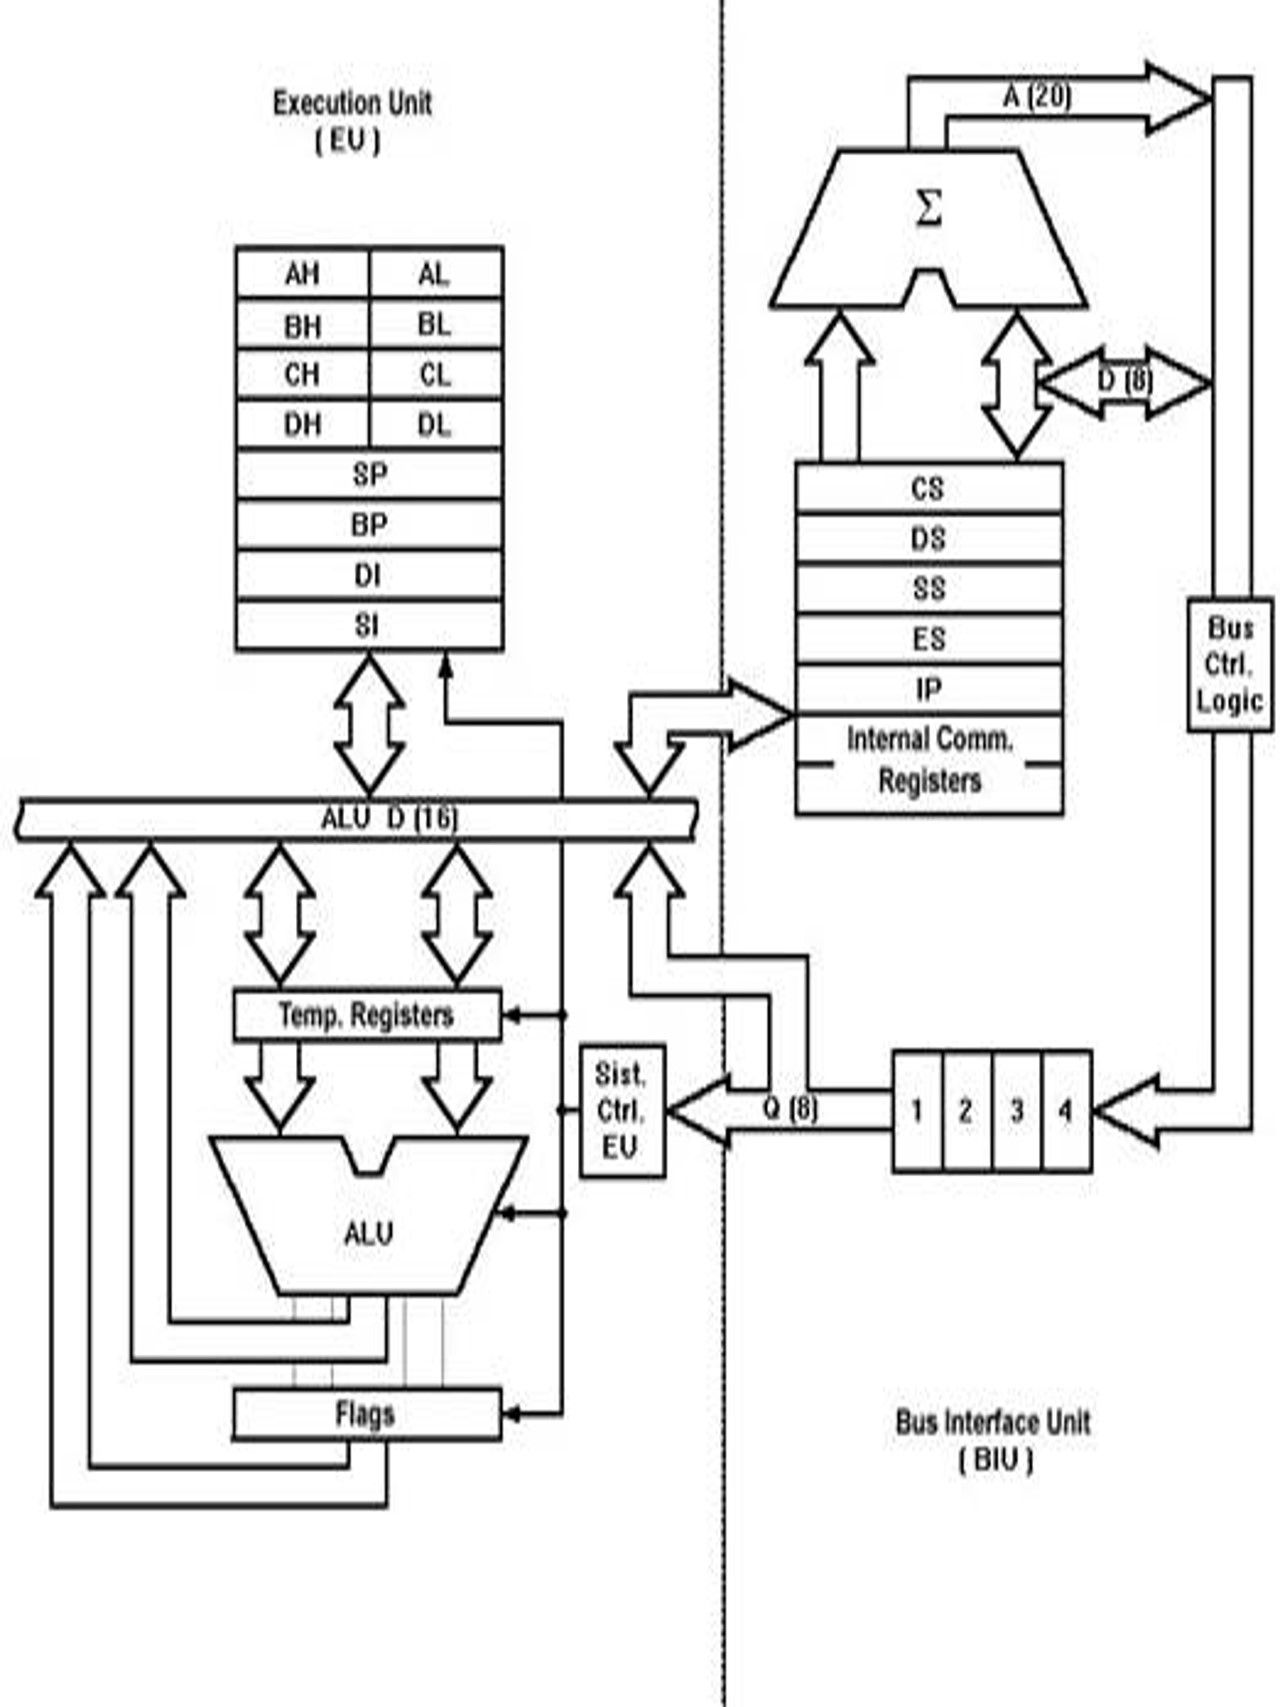 Intel Microprocessor Architecture